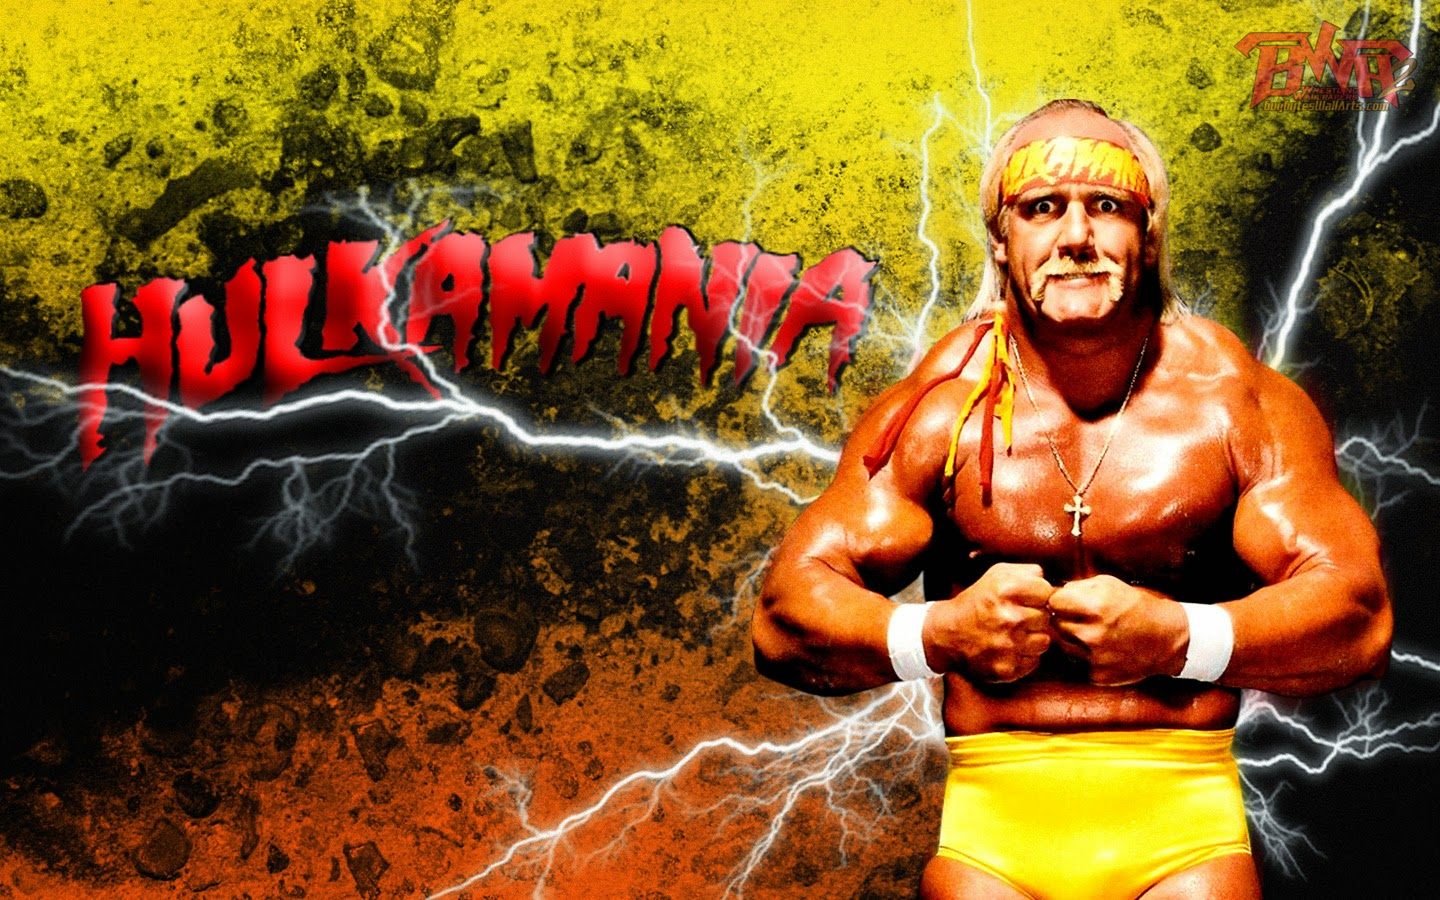 Wwe Hulk Hogan Wallpaperswide9 Blogspot Free Hd Desktop Wallpapers